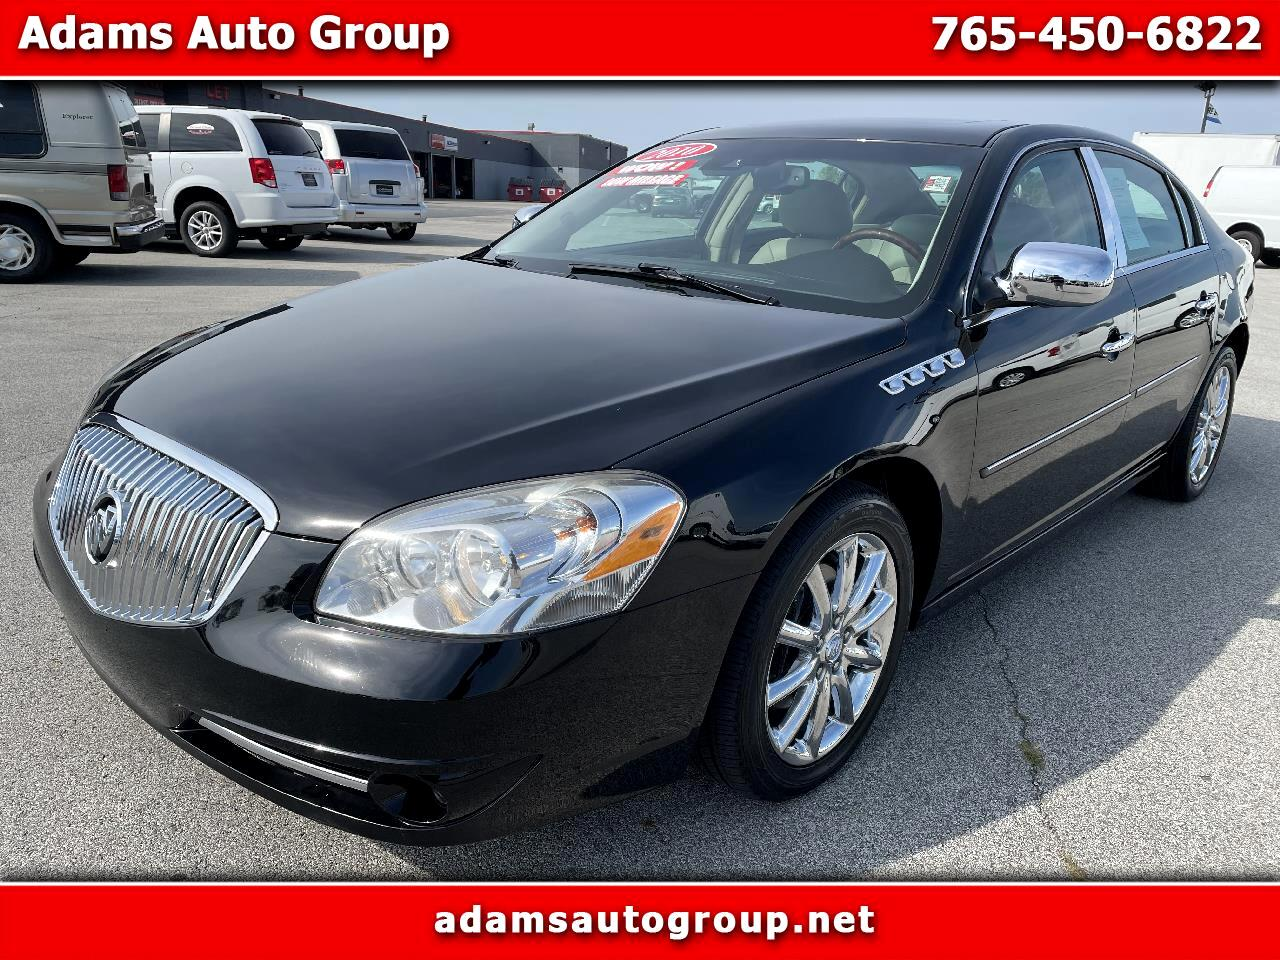 Buick Lucerne 4dr Sdn Super 1XS 2010